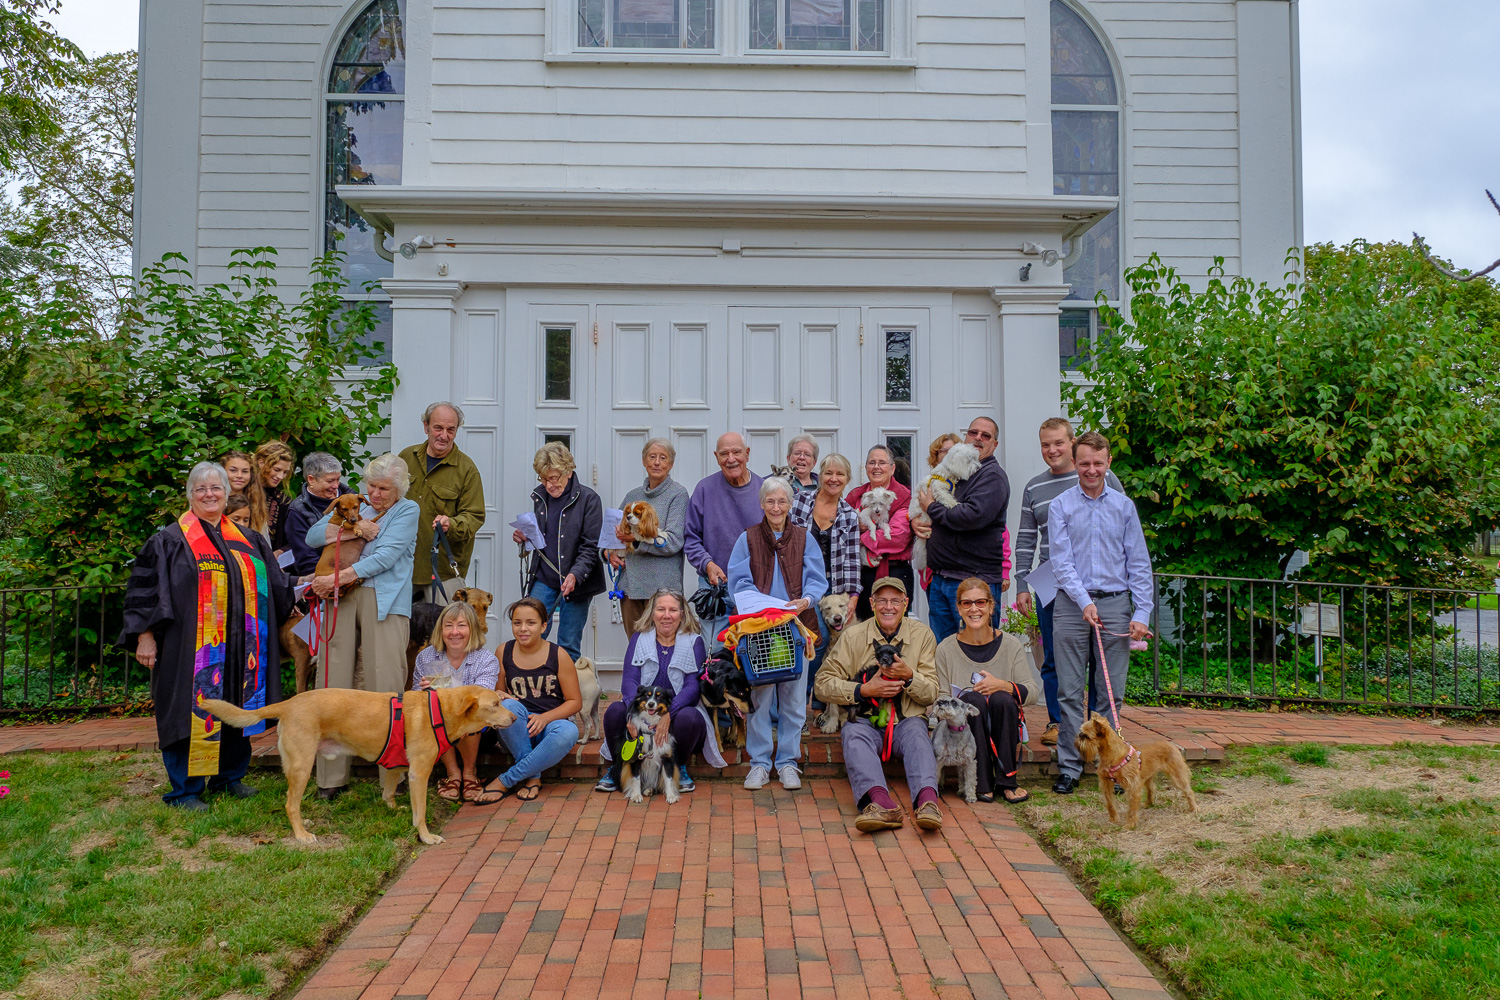 The animals and their owners gather for the blessing of the animals at Orient Congregational Church Sunday. (Credit: Jeremy Garretson of J.G. Photography)